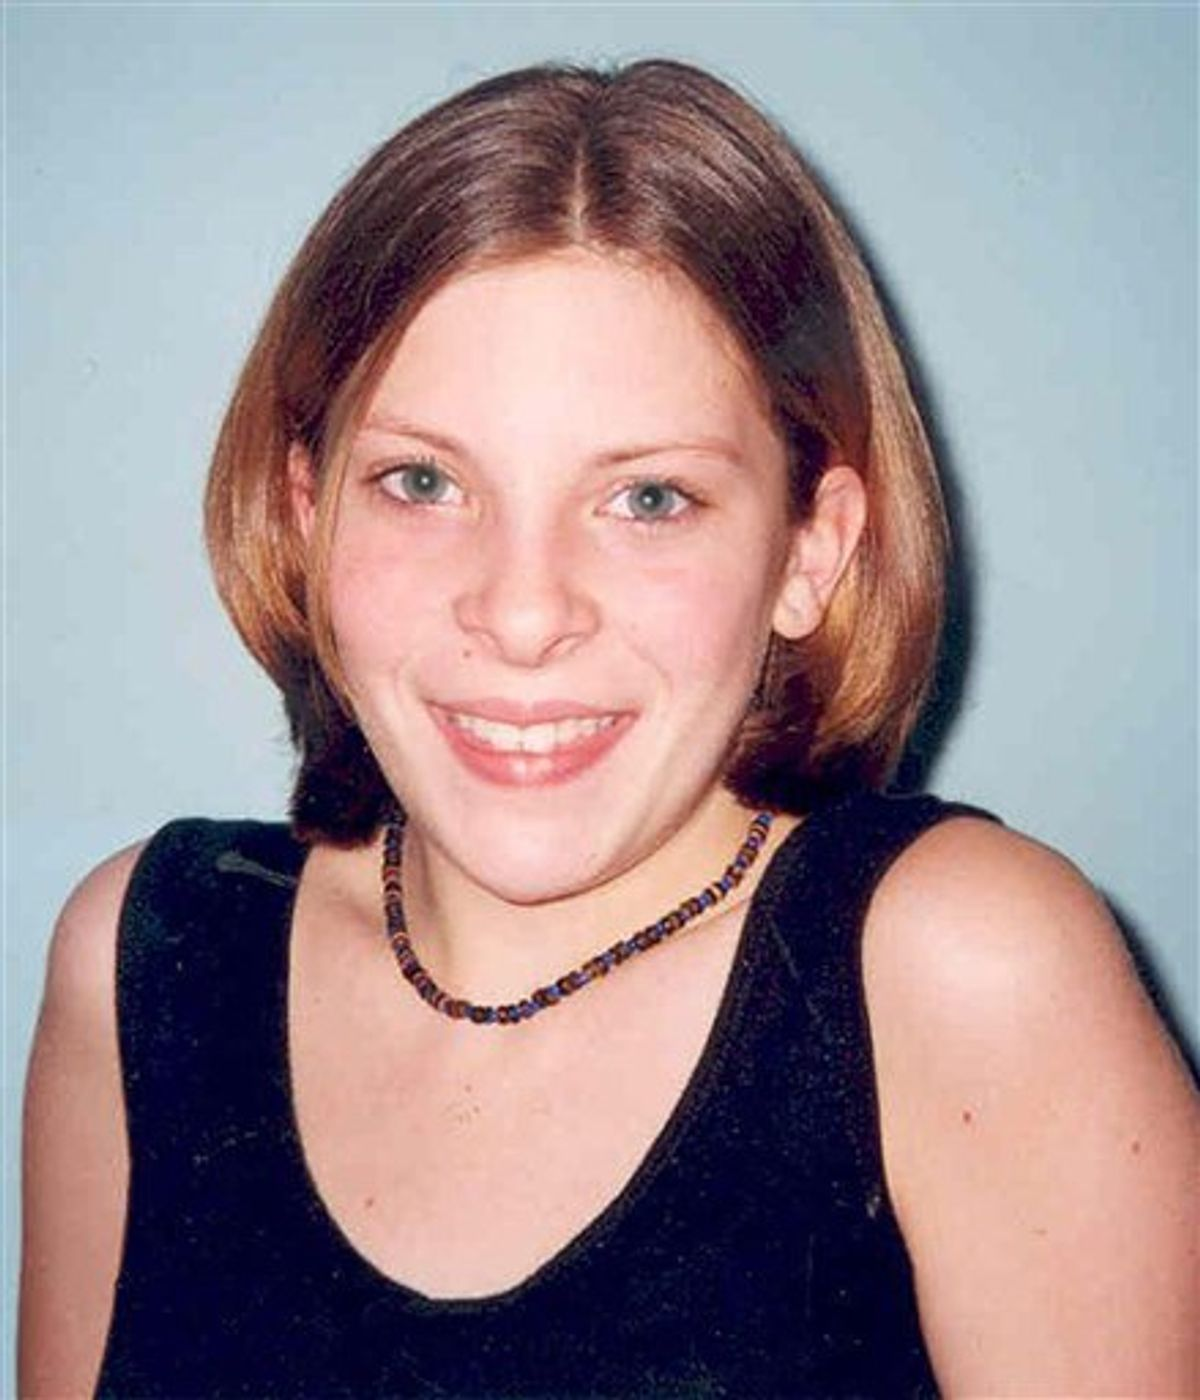 """This is an undated Surrey Police handout photo of Milly Dowler made available Monday July 4, 2011 . Britain 's Prime Minister David Cameron said Tuesday Juily 5, 2011 that he is shocked by allegations that a British tabloid hacked into the cellphone of a murdered schoolgirl  Milly Dowler after she went missing. """"If they are true, this is a truly dreadful act and a truly dreadful situation,"""" Cameron said about the latest hacking allegations against the News of the World. (AP Photo/Surrey Police. Ho) UNITED KINGDOM OUT NO SALES NO ARCHIVE EDITORIAL USE ONLY (AP)"""